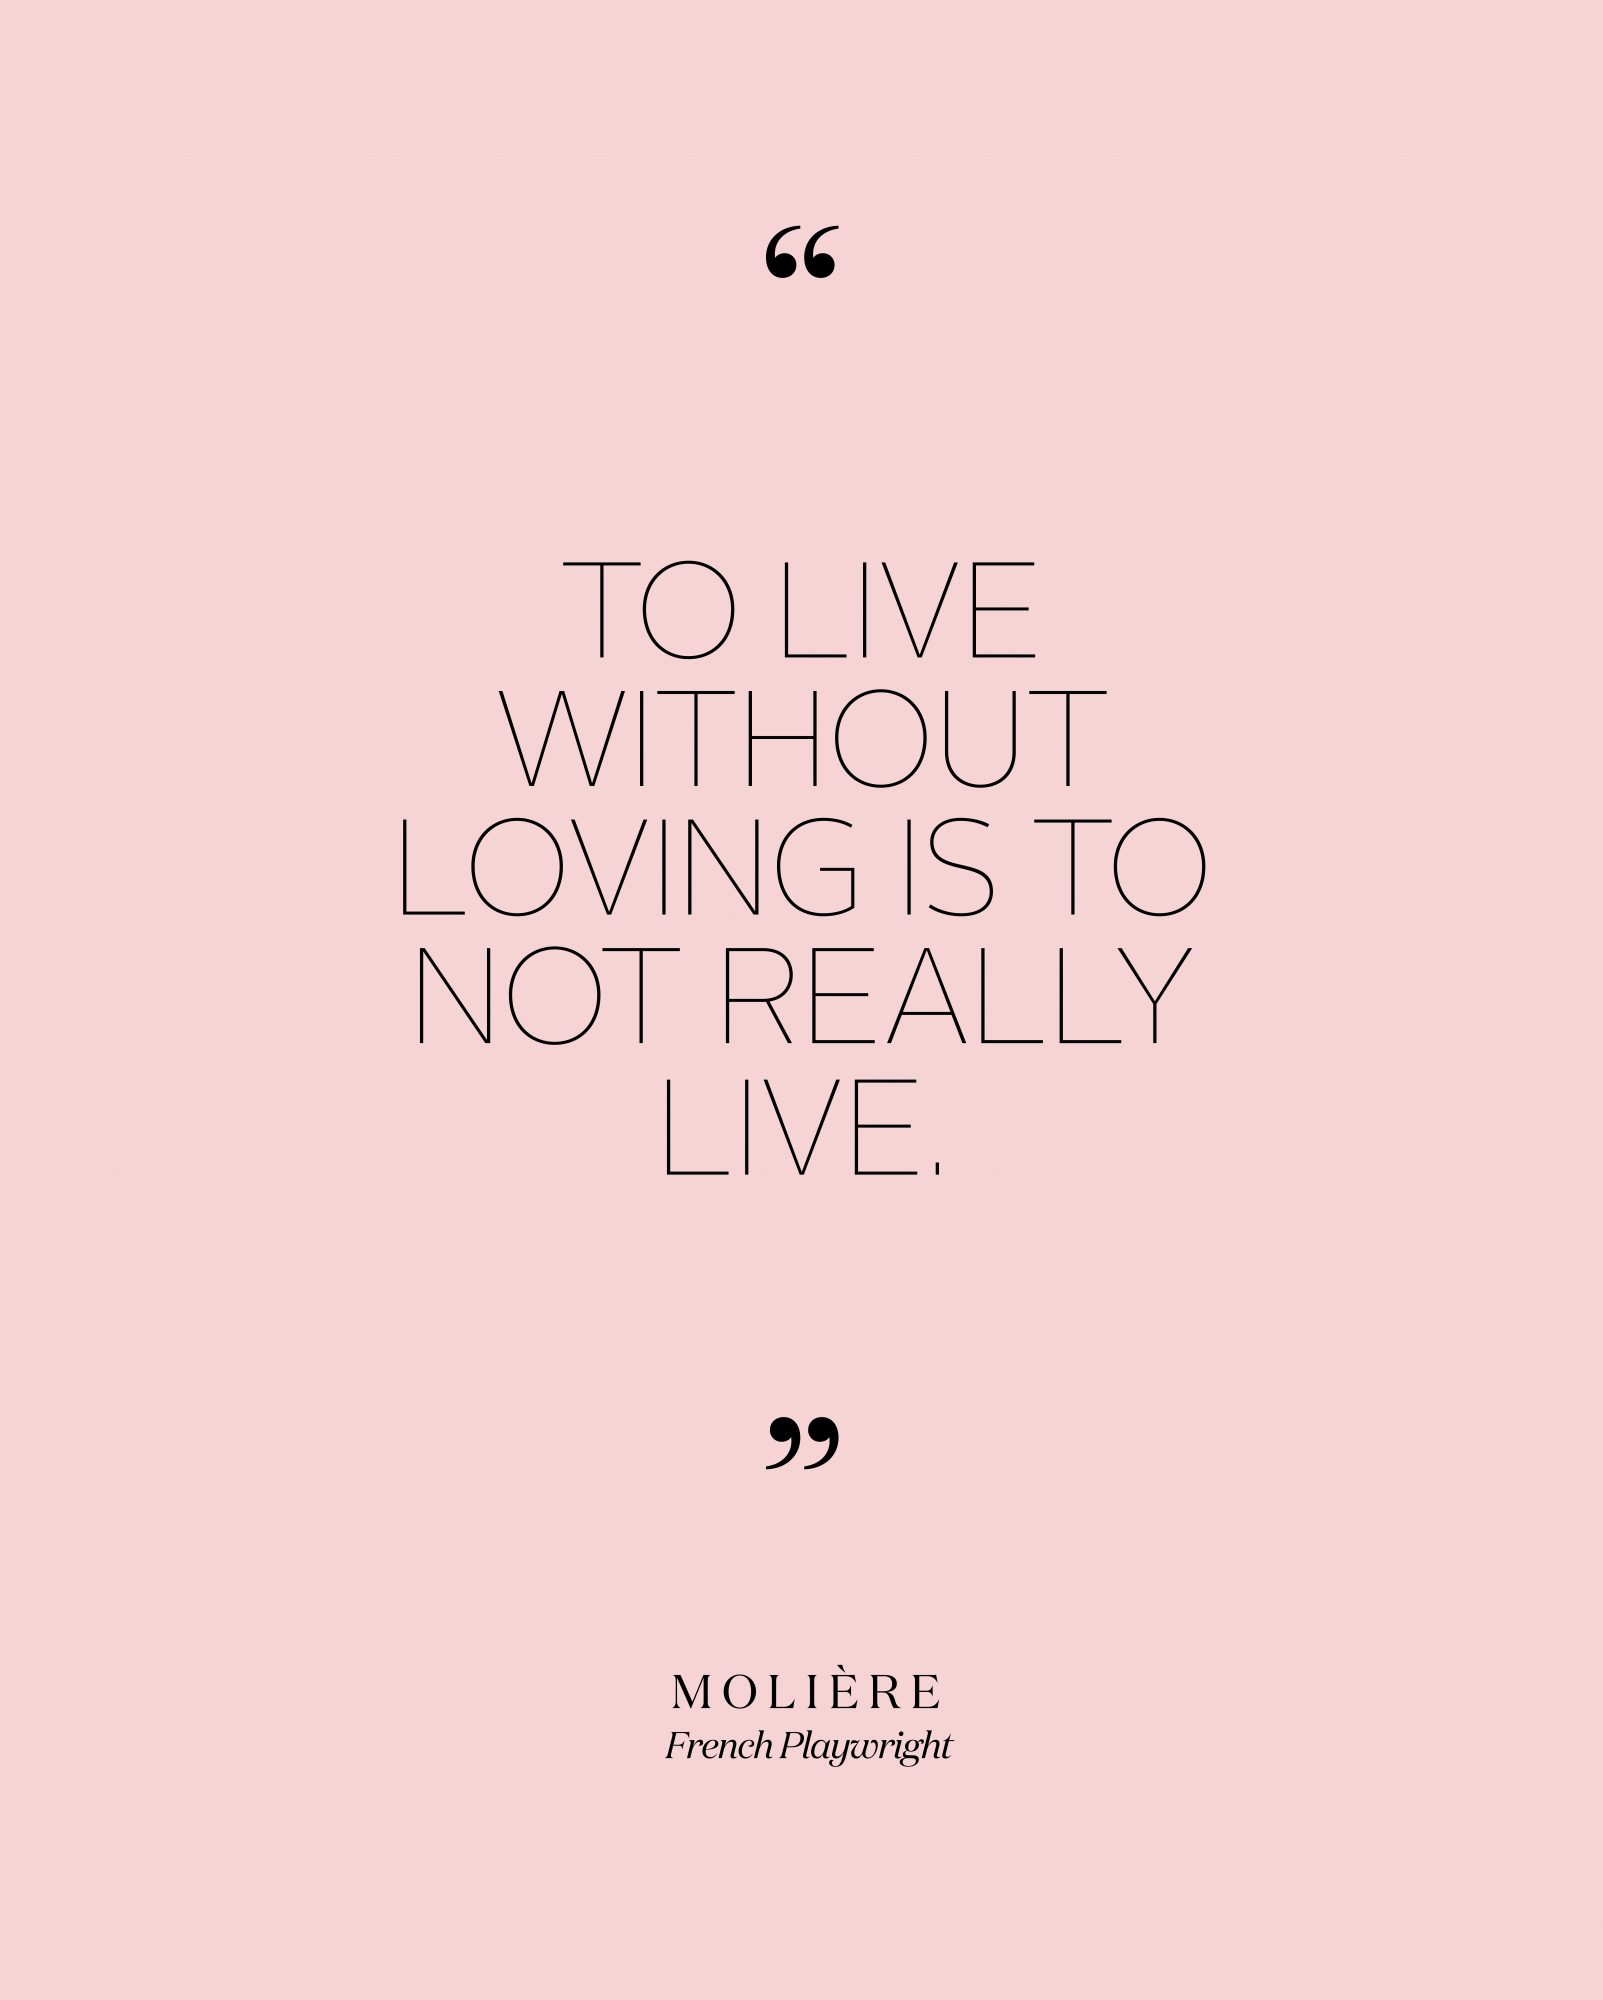 love-quotes-moliere-0715.jpg